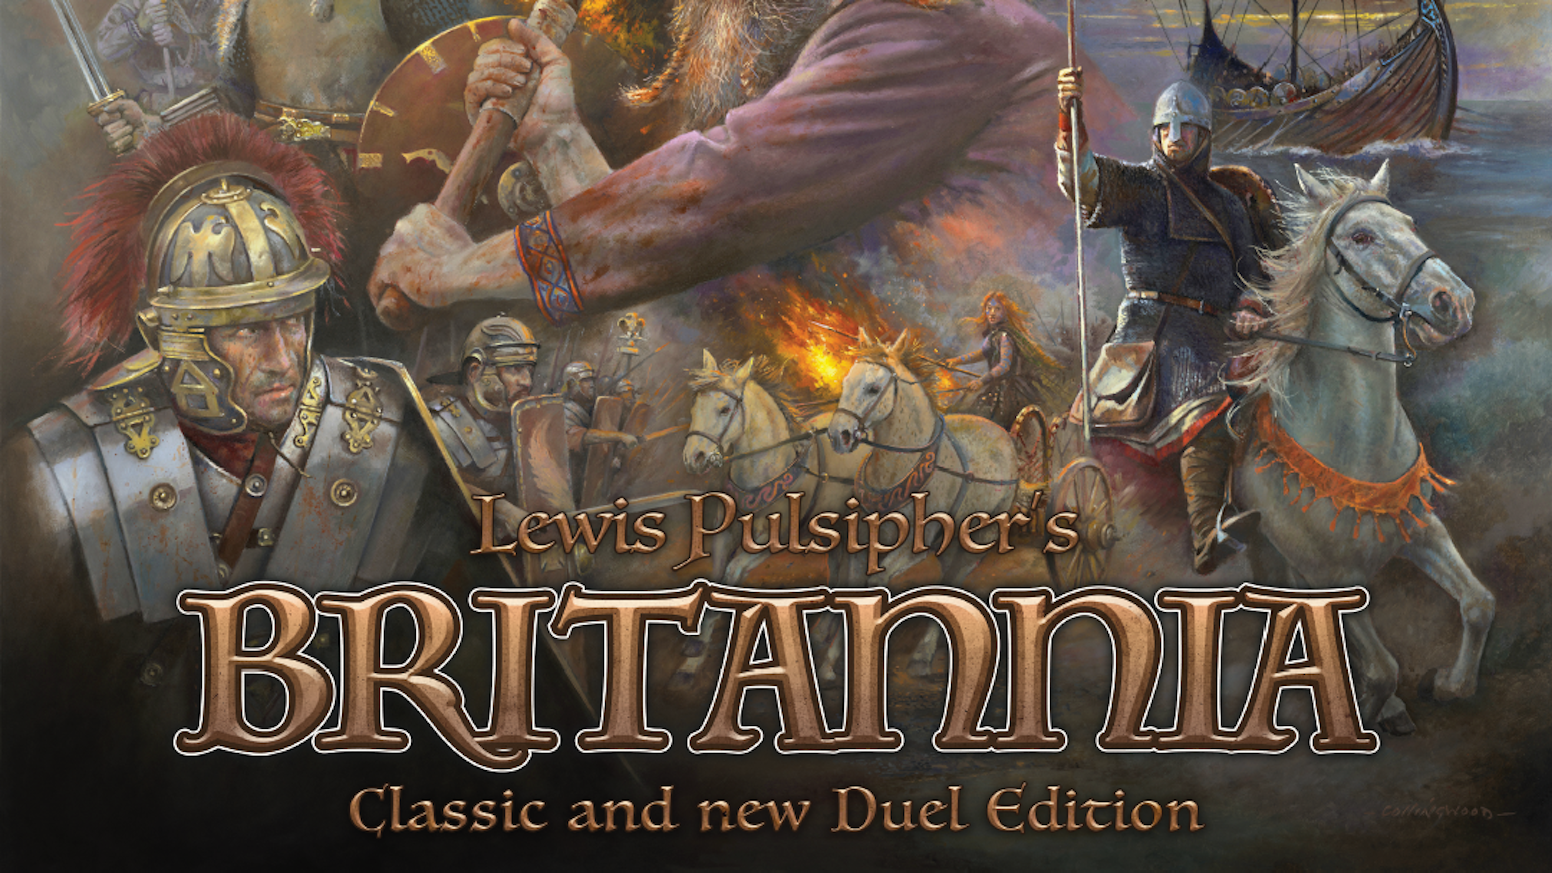 The much-loved historical board game Britannia returns with over 200 miniatures and TWO GAMES in ONE BOX: Classic and Duel!